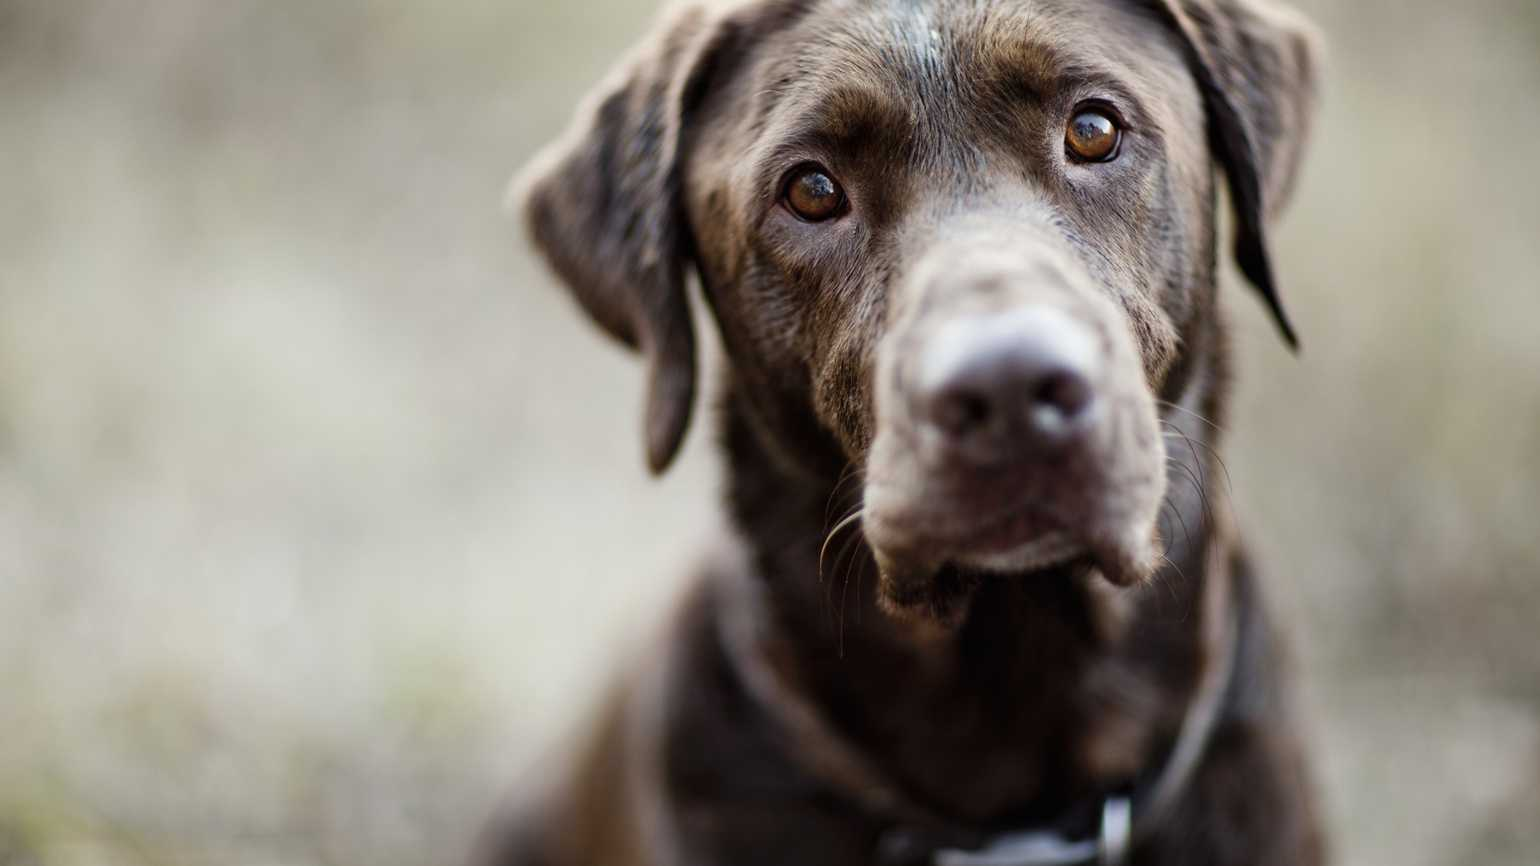 Loving a New Dog After Grieving Loss of Beloved Pet